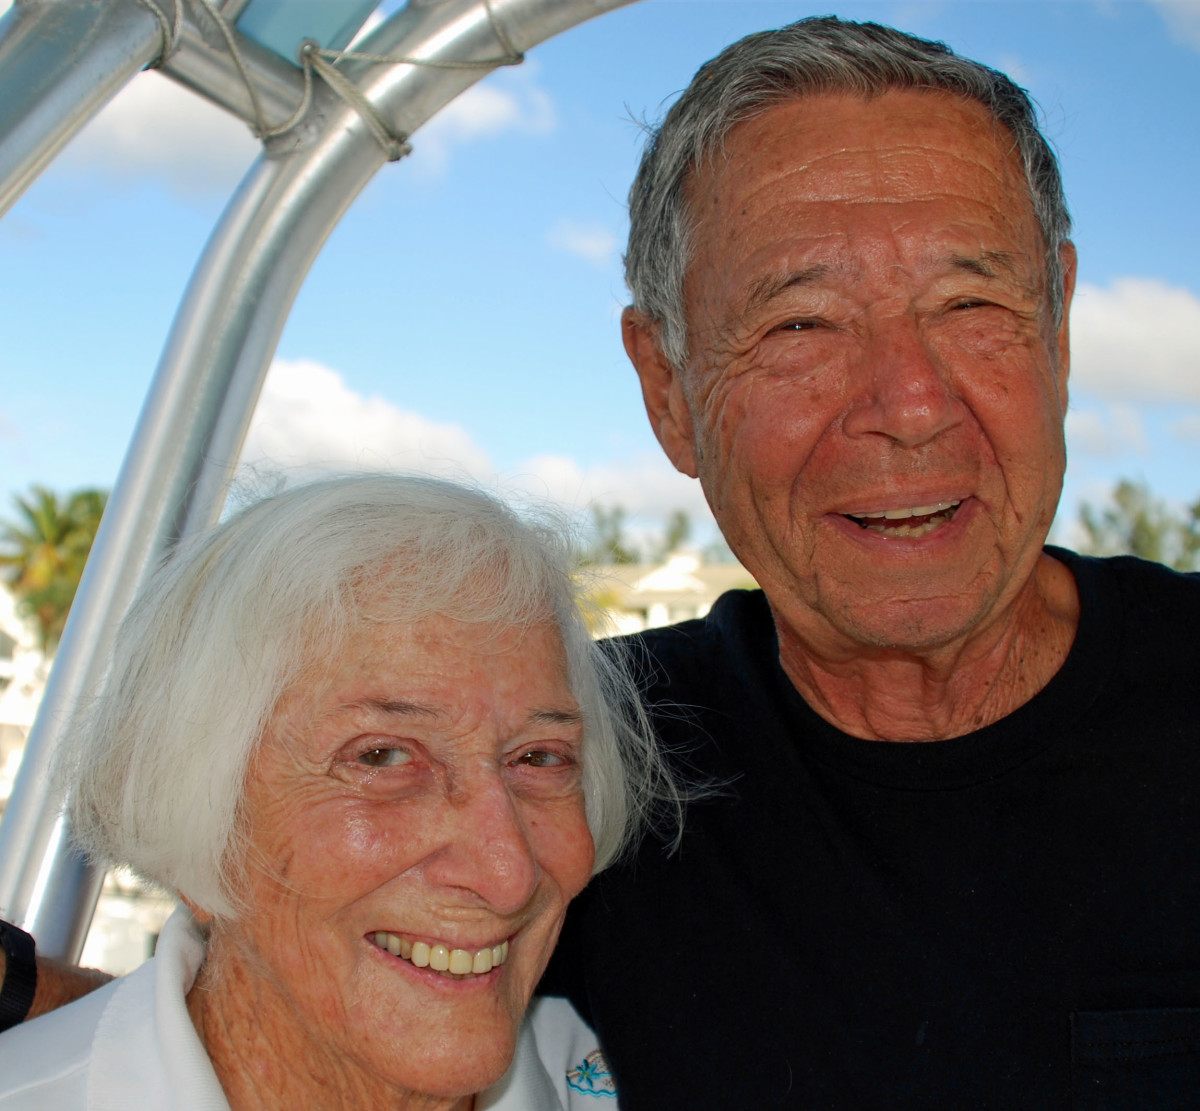 Bev and Dave Feiges enjoy marina life aboard Cloverleaf in Fort Lauderdale.